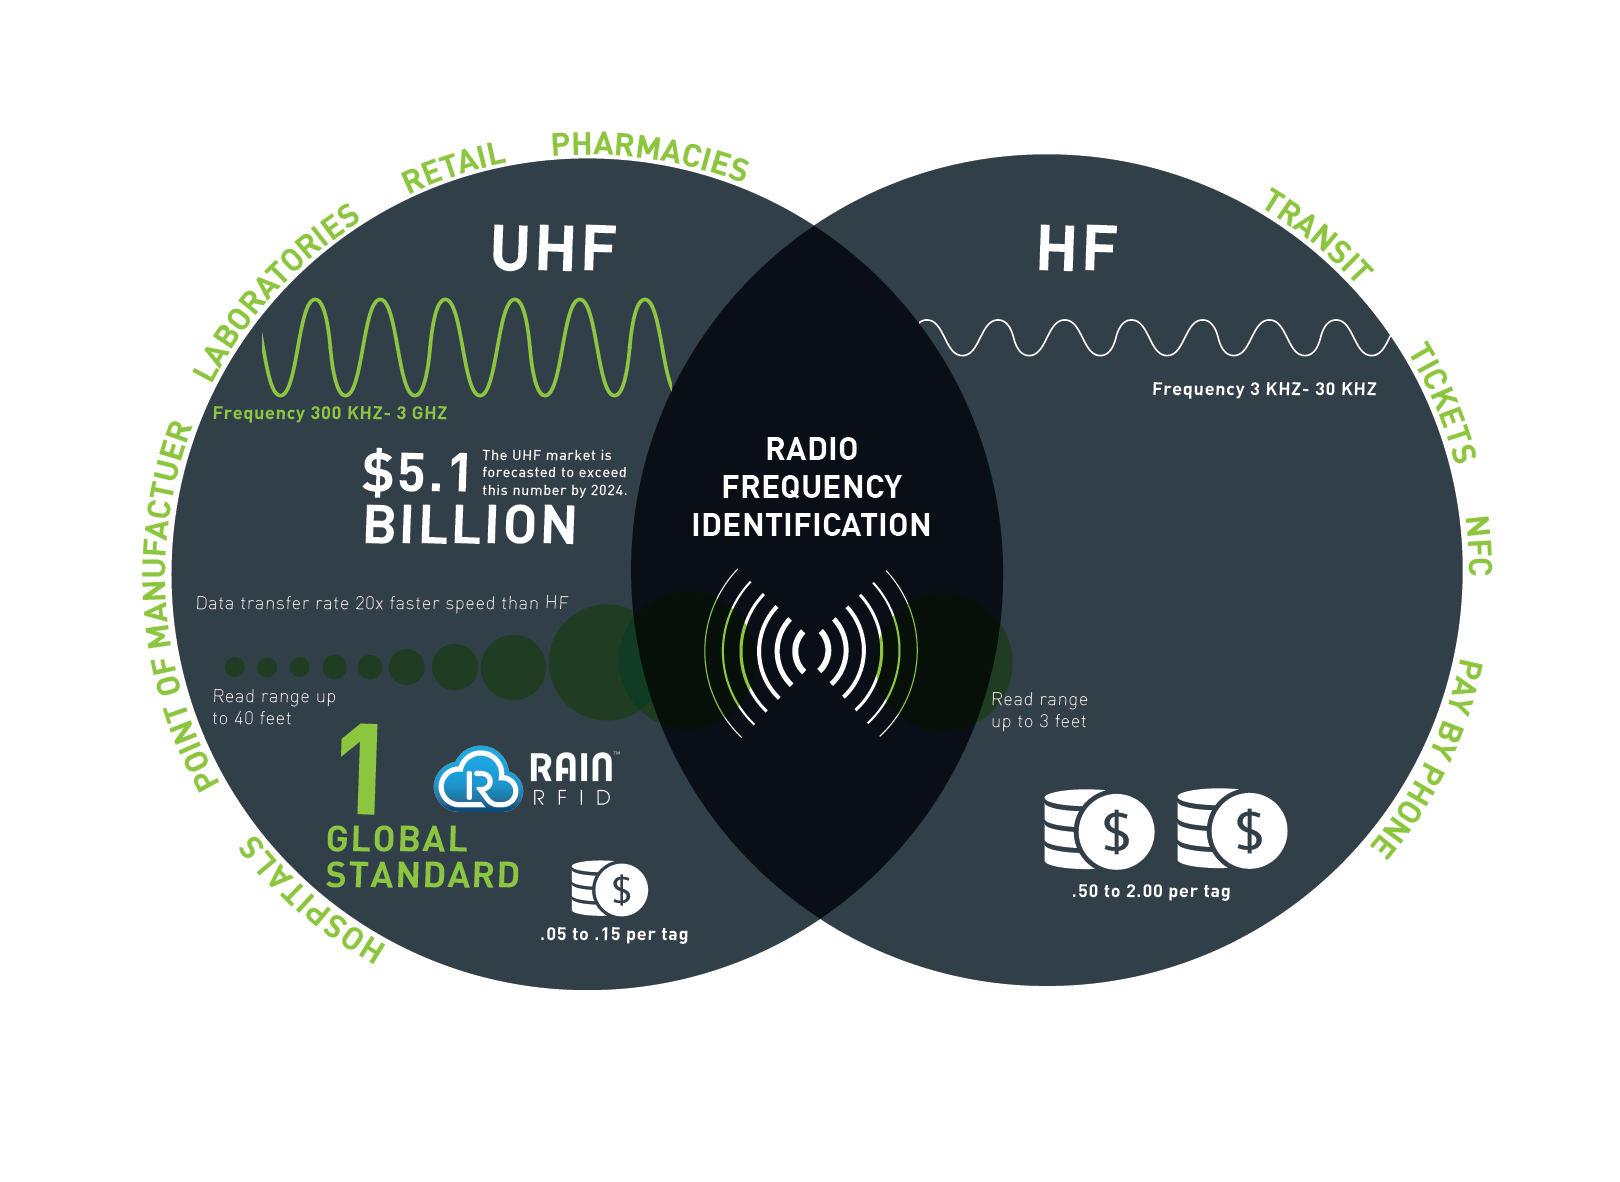 The difference between UHF RFID and HF RFID